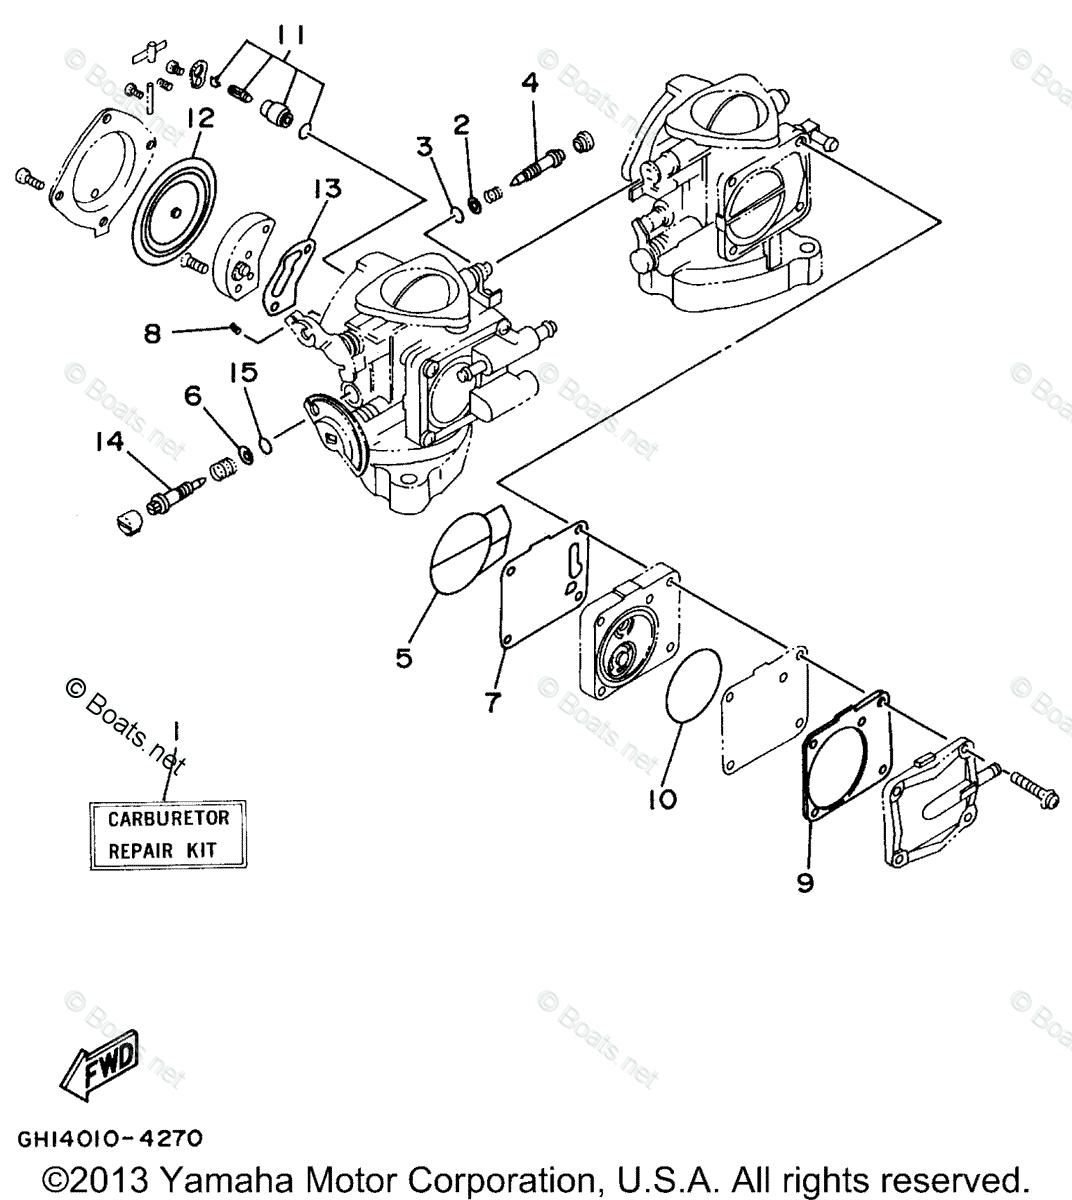 Yamaha Waverunner Parts 1995 OEM Parts Diagram for Repair